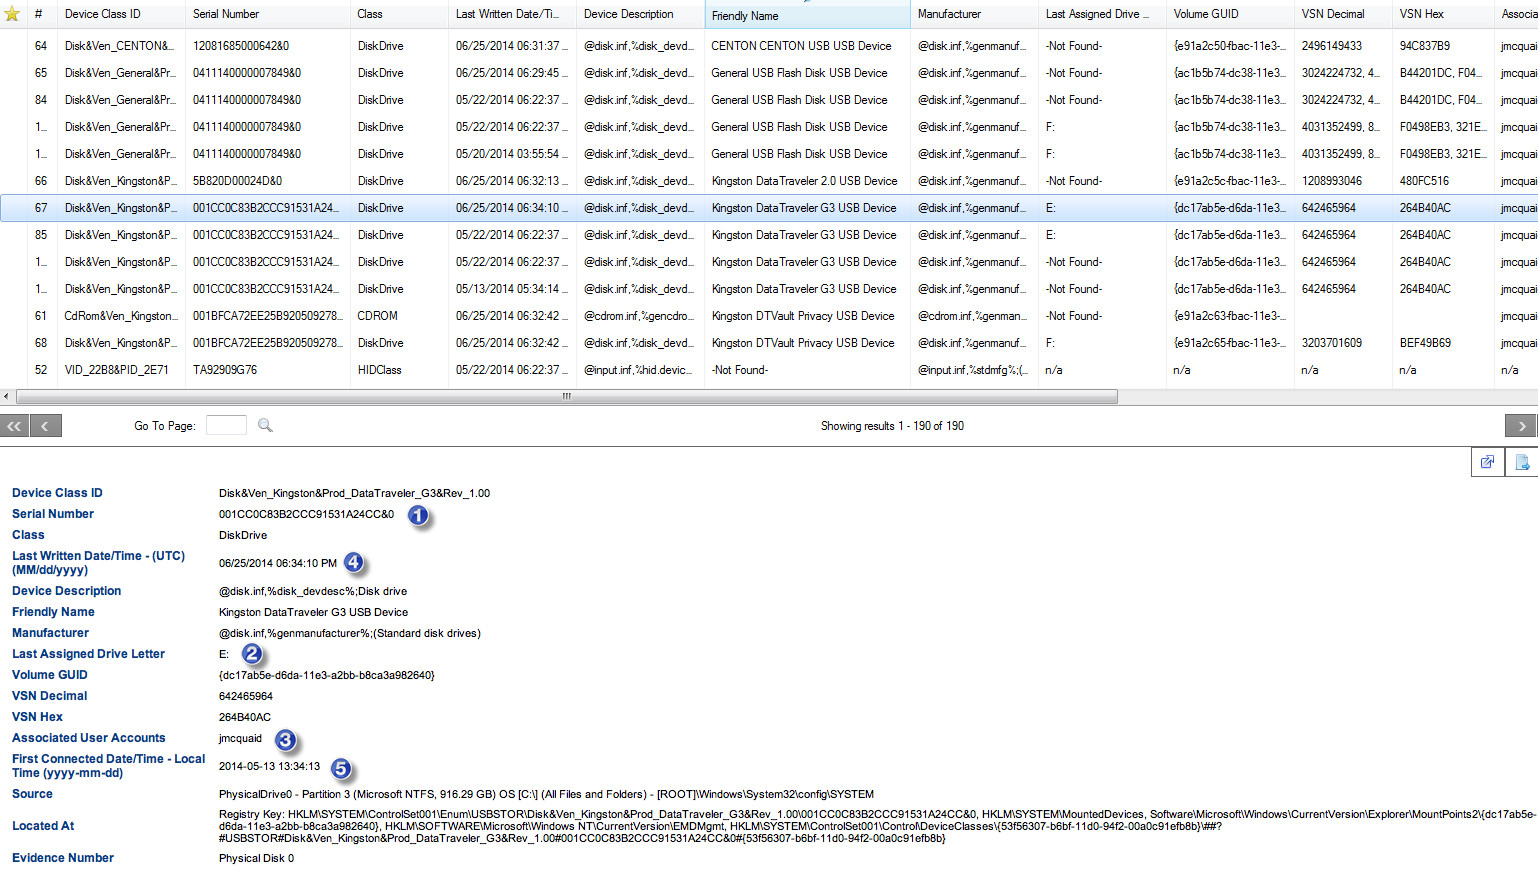 Windows registry files showing history - Device